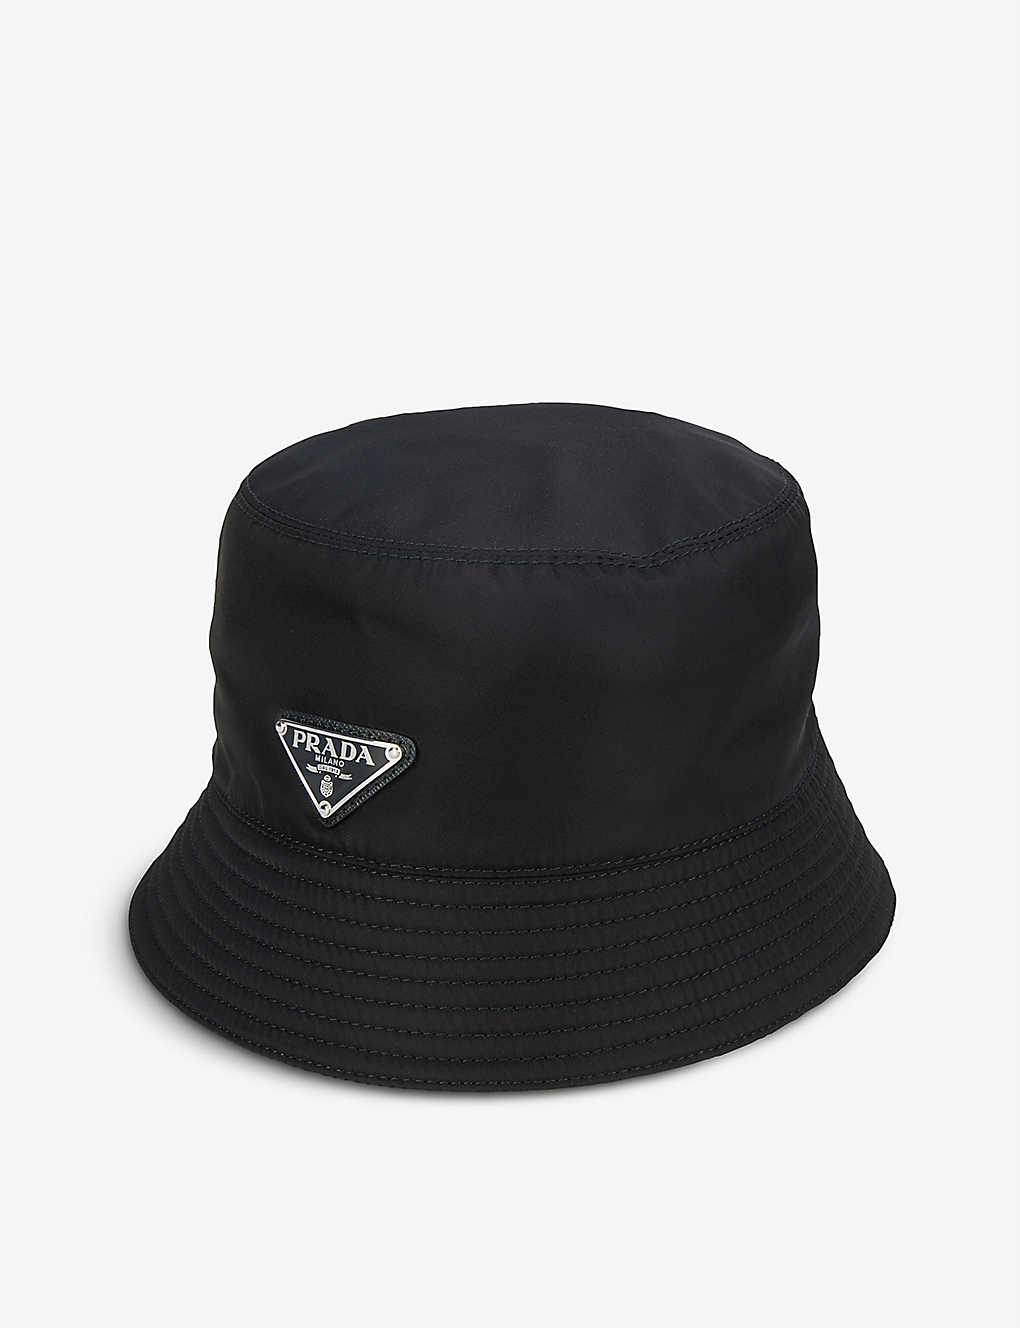 23407e416db99 PRADA - Logo nylon bucket hat